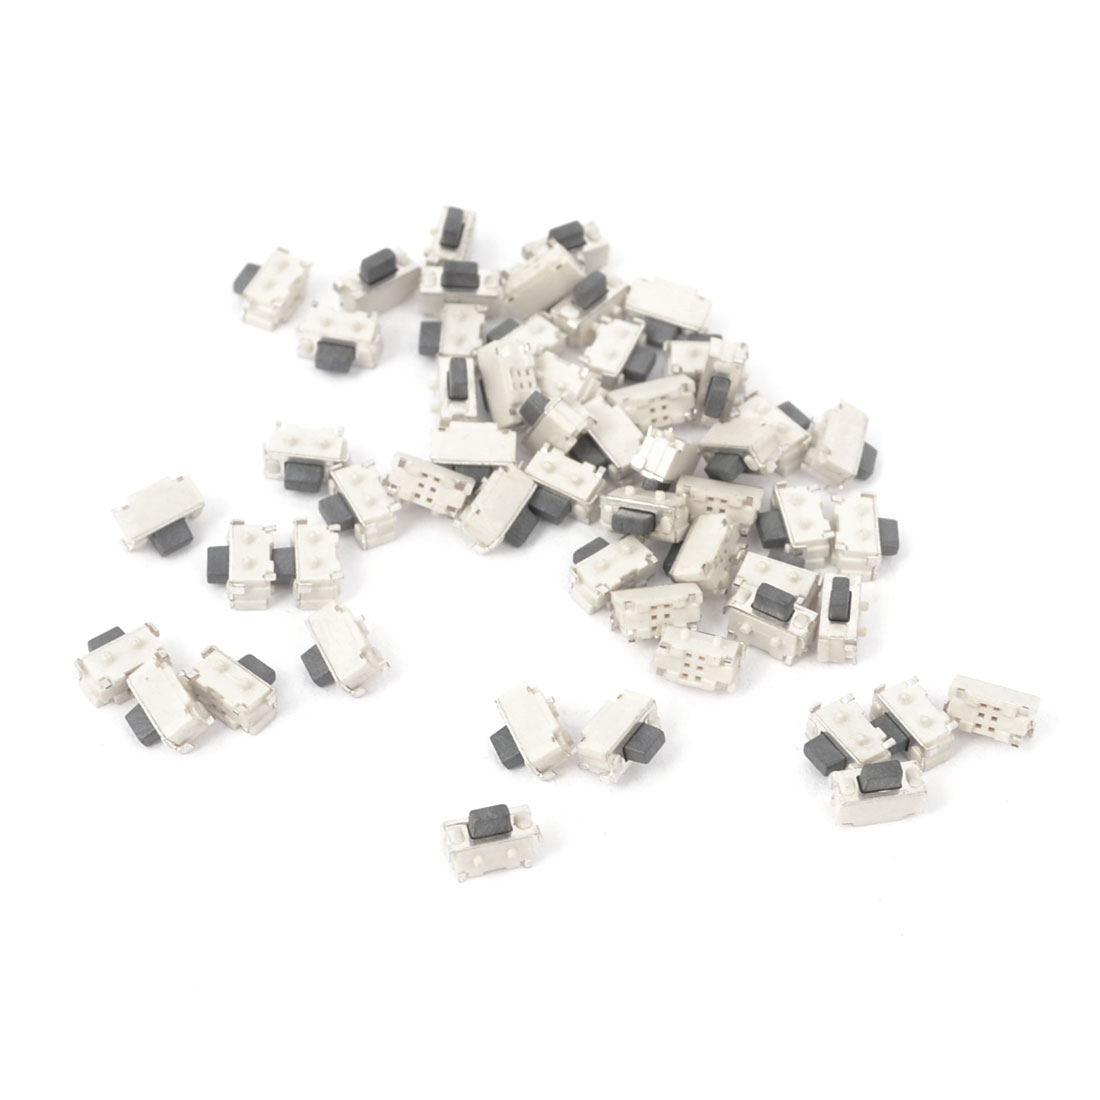 55Pcs Momentary Tact Tactile Push Button Switch 2x4x3.5mm